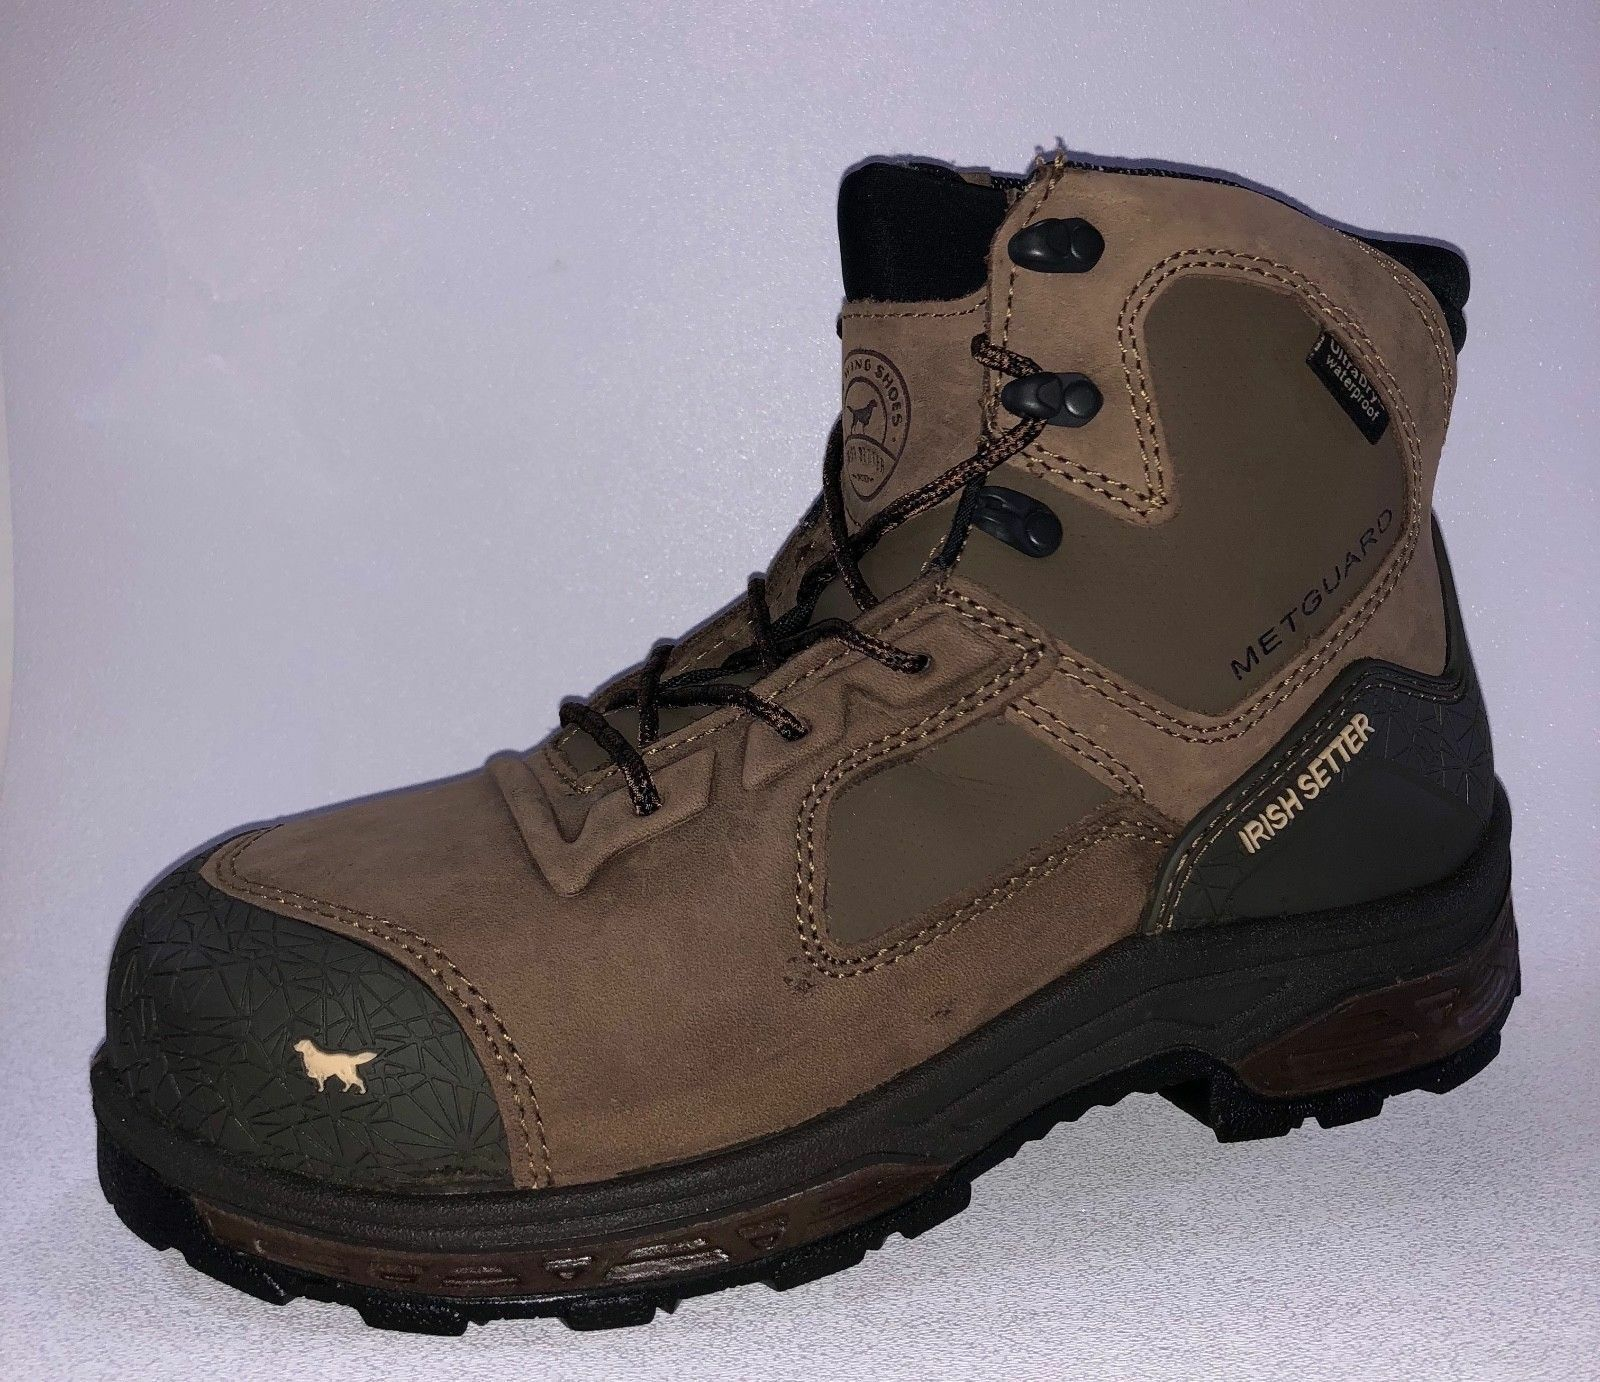 Irish Setter KASOTA Mens 83644 Brown NON-METALLIC SAFETY TOE Waterproof Boots